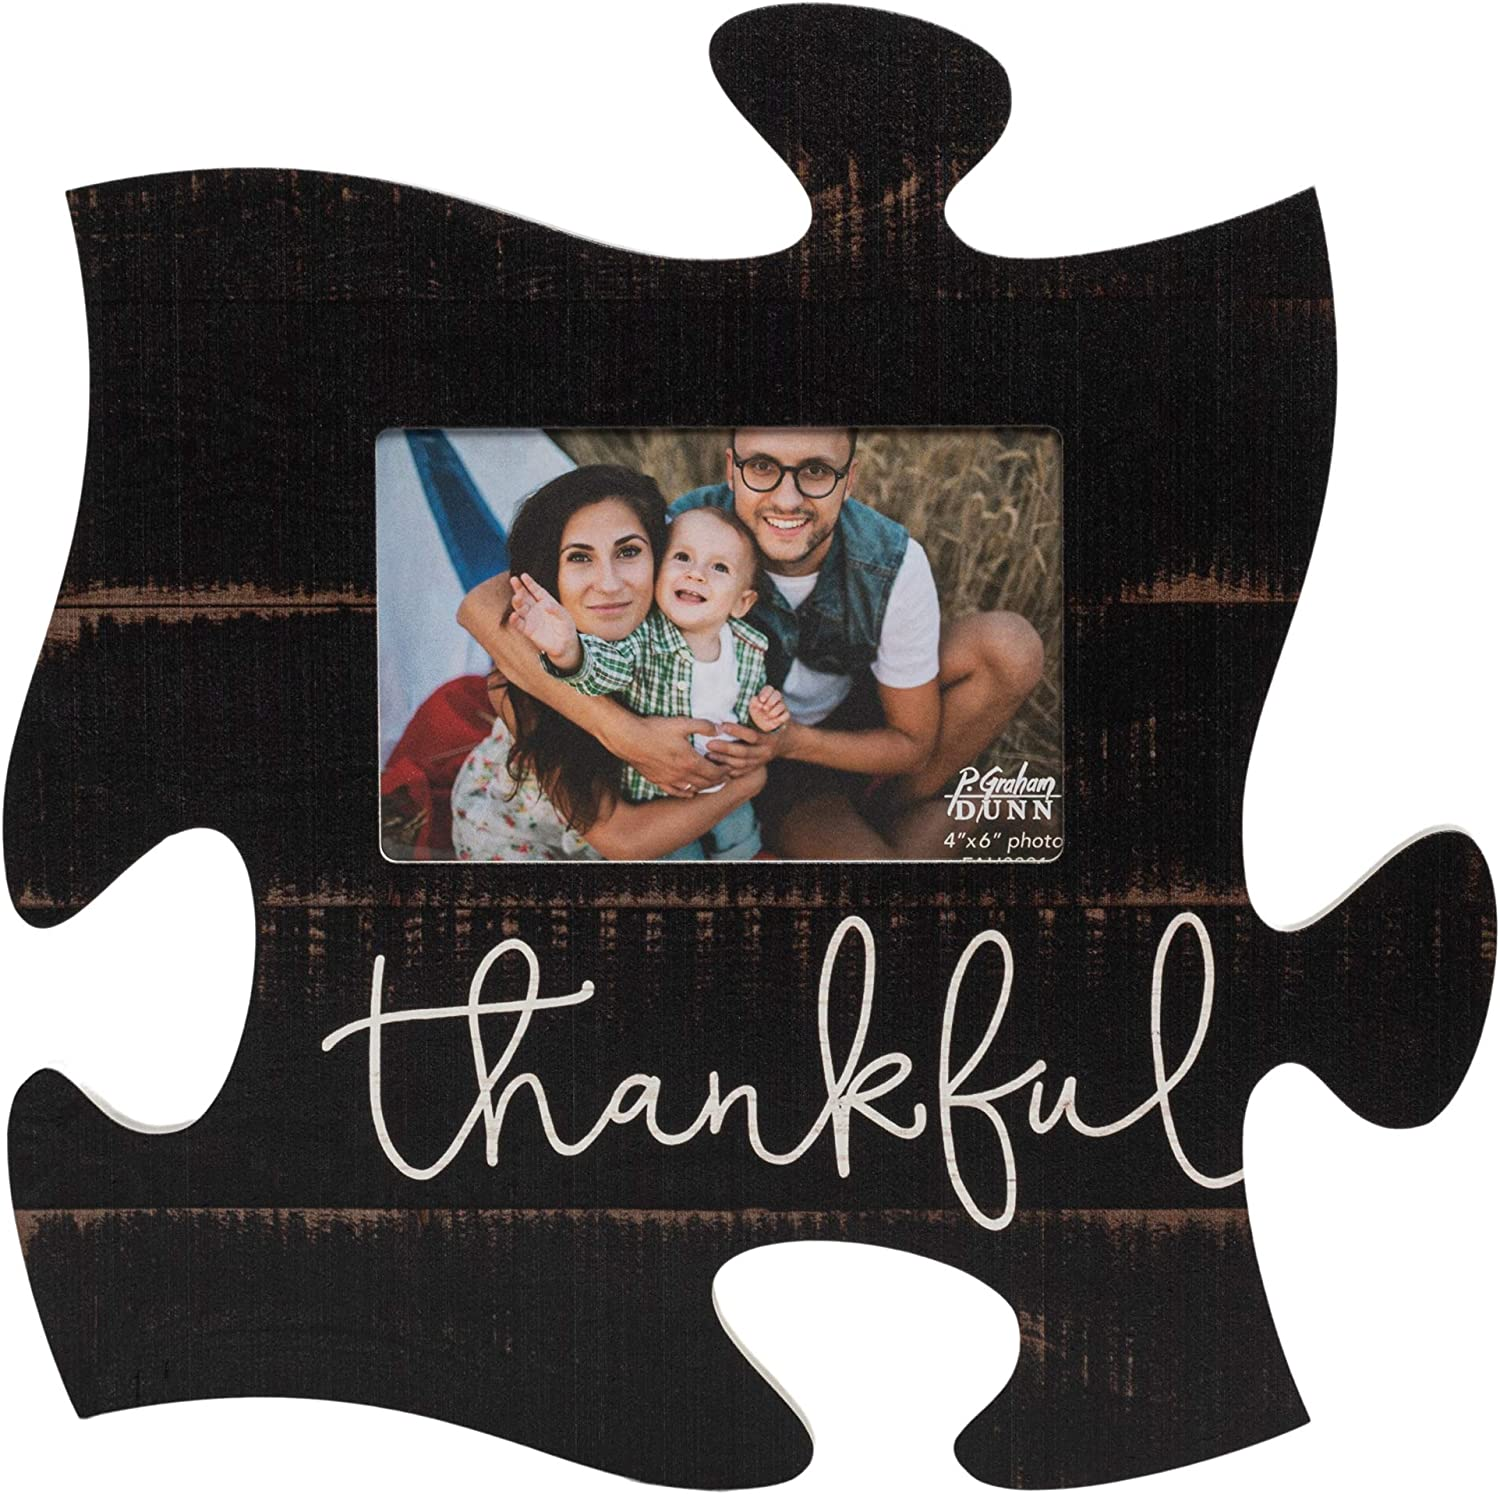 Challenge the lowest price of Japan ☆ P. Graham Dunn Thankful Script Design Black Wood Look Distressed Popularity